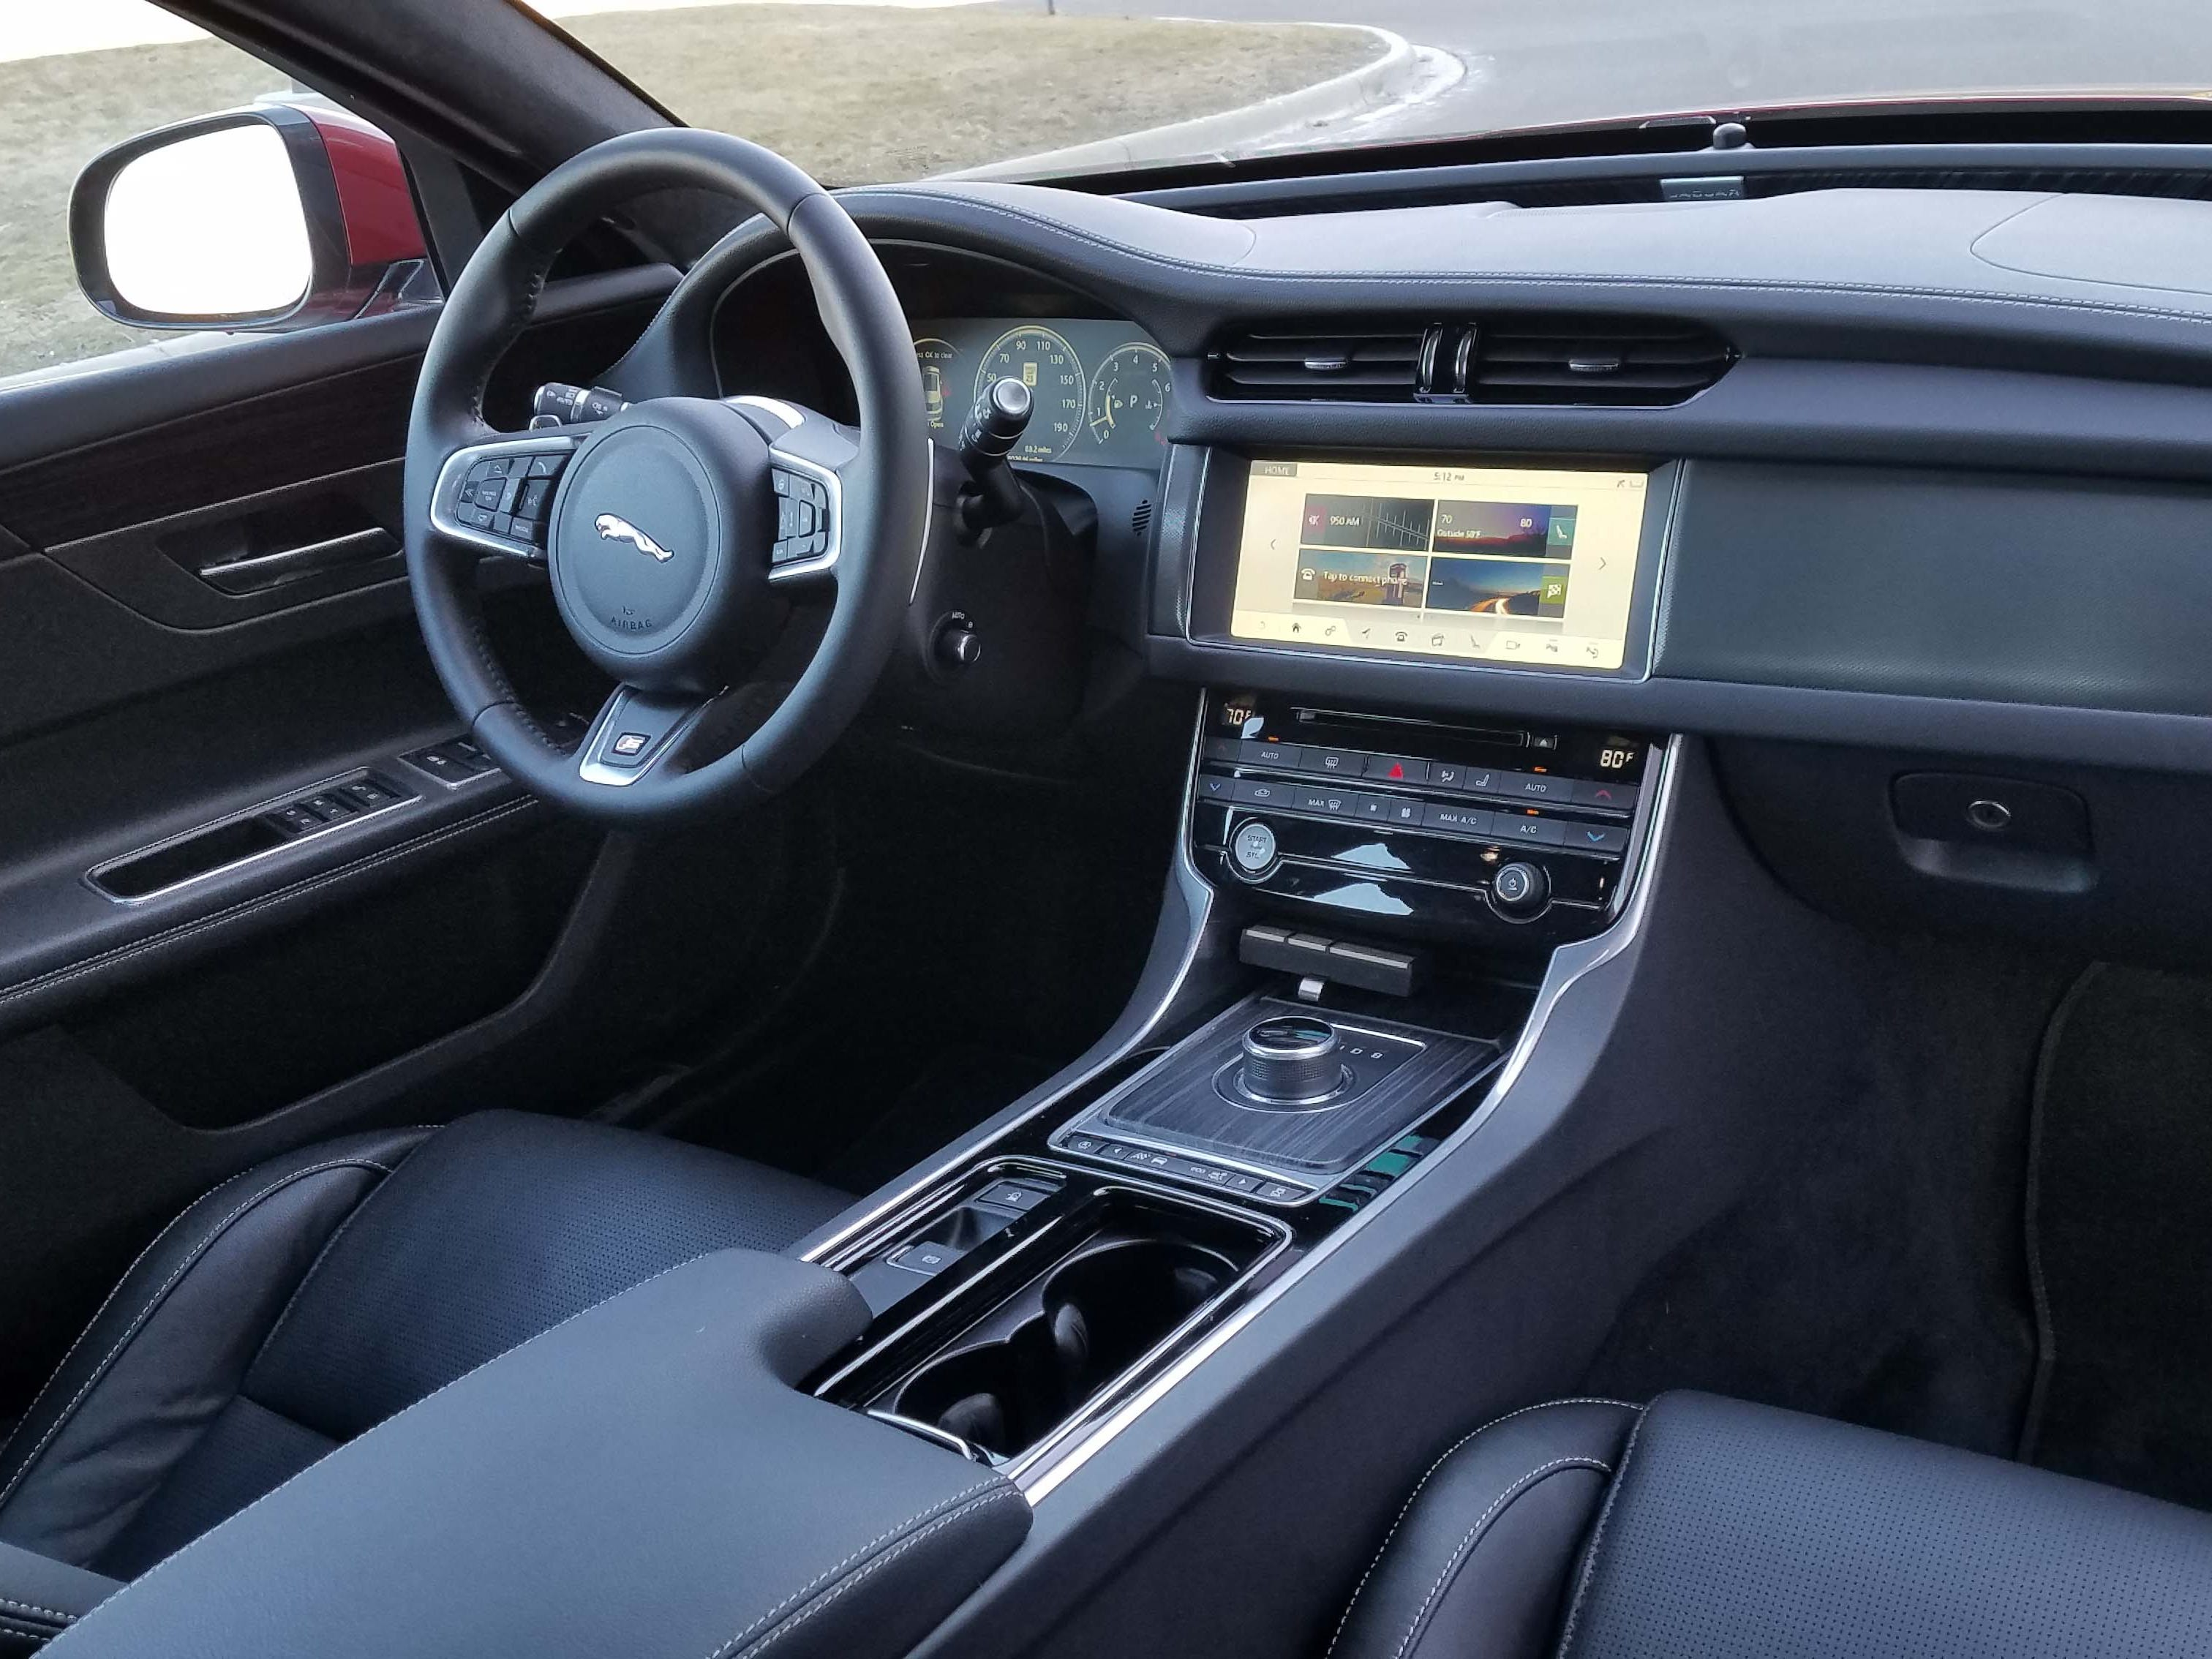 Compared to the Mercedes, the Jaguar XF Sportbrake's interior feels dated with a slow screen and plain layout. The pop-up, rotary shifter adds a touch of class.